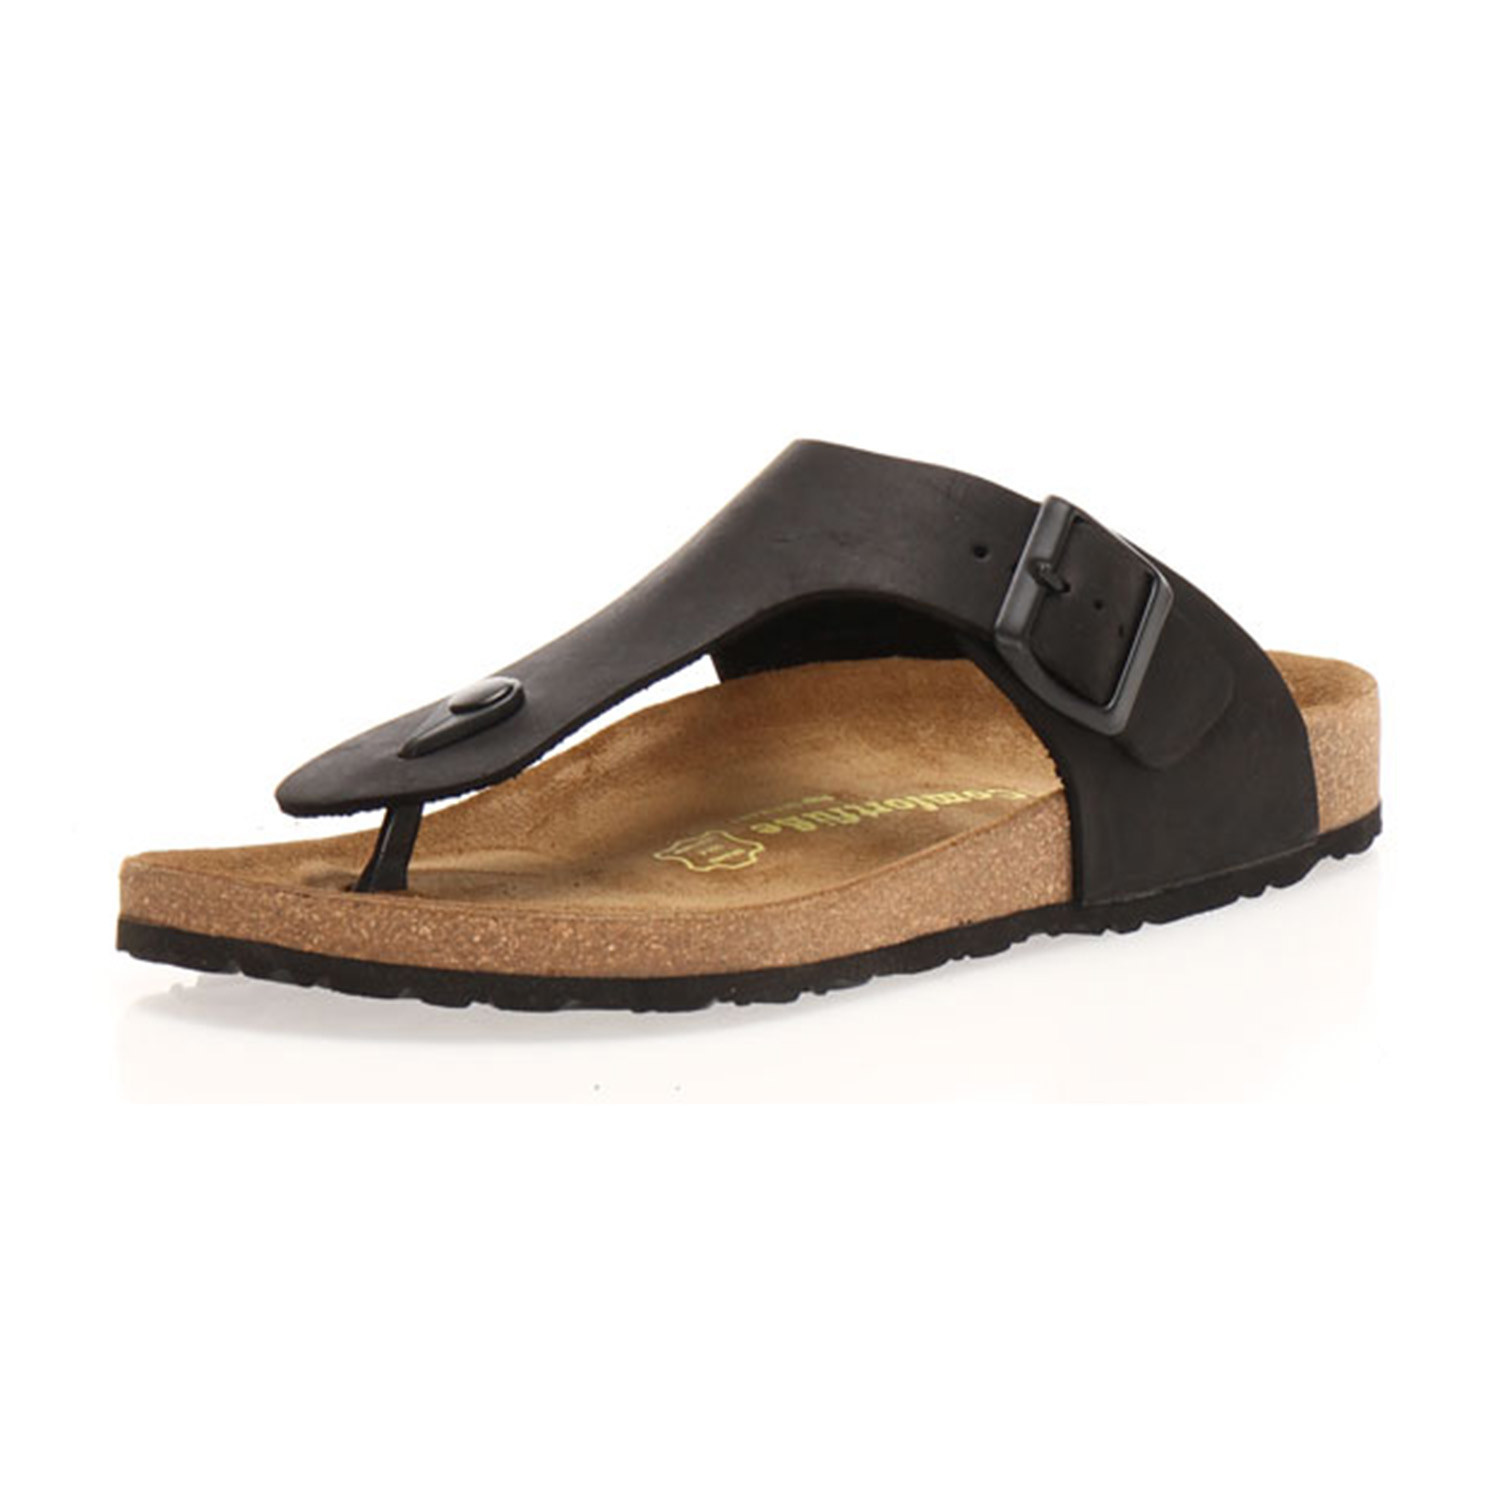 07bec564a36a Maui Sandal    Black (Euro  45) - Comfortfusse - Touch of Modern